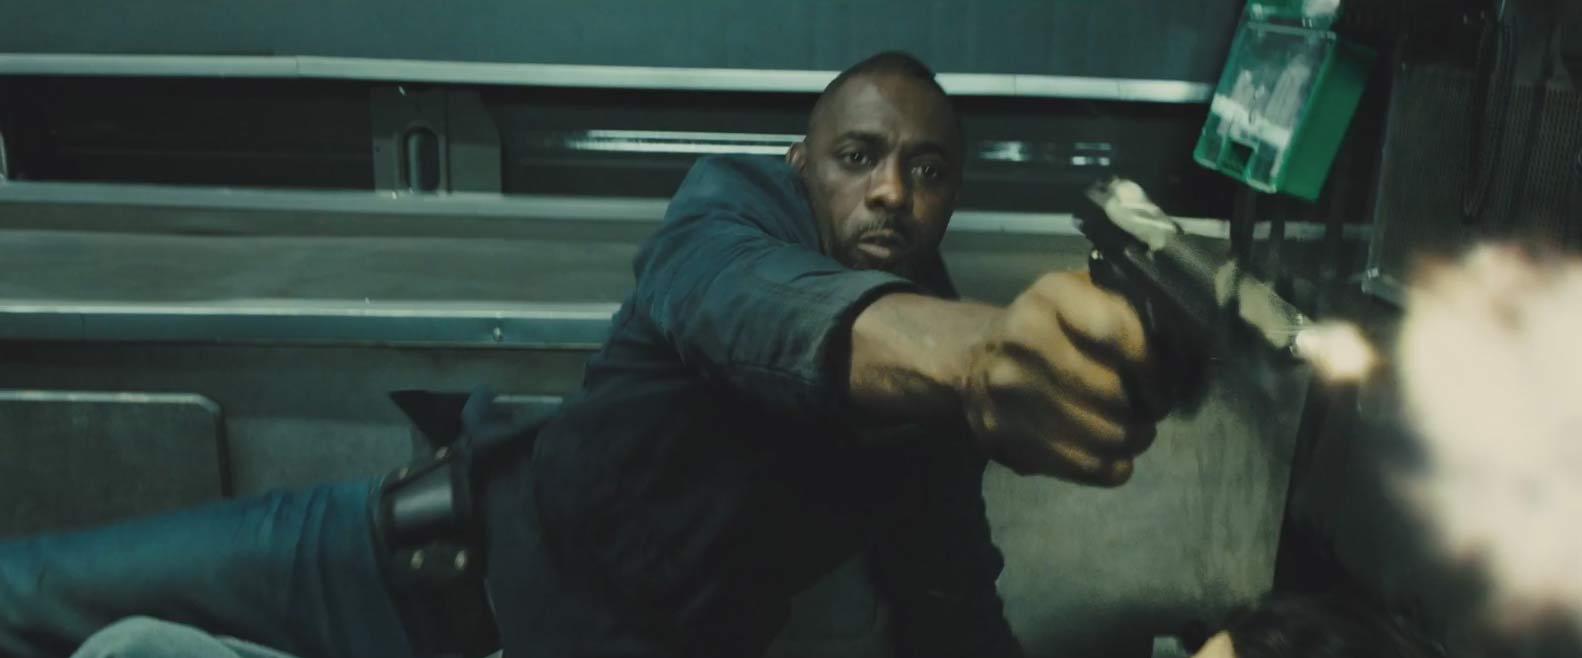 Bastille Day Trailer Screencap - Idris Elba